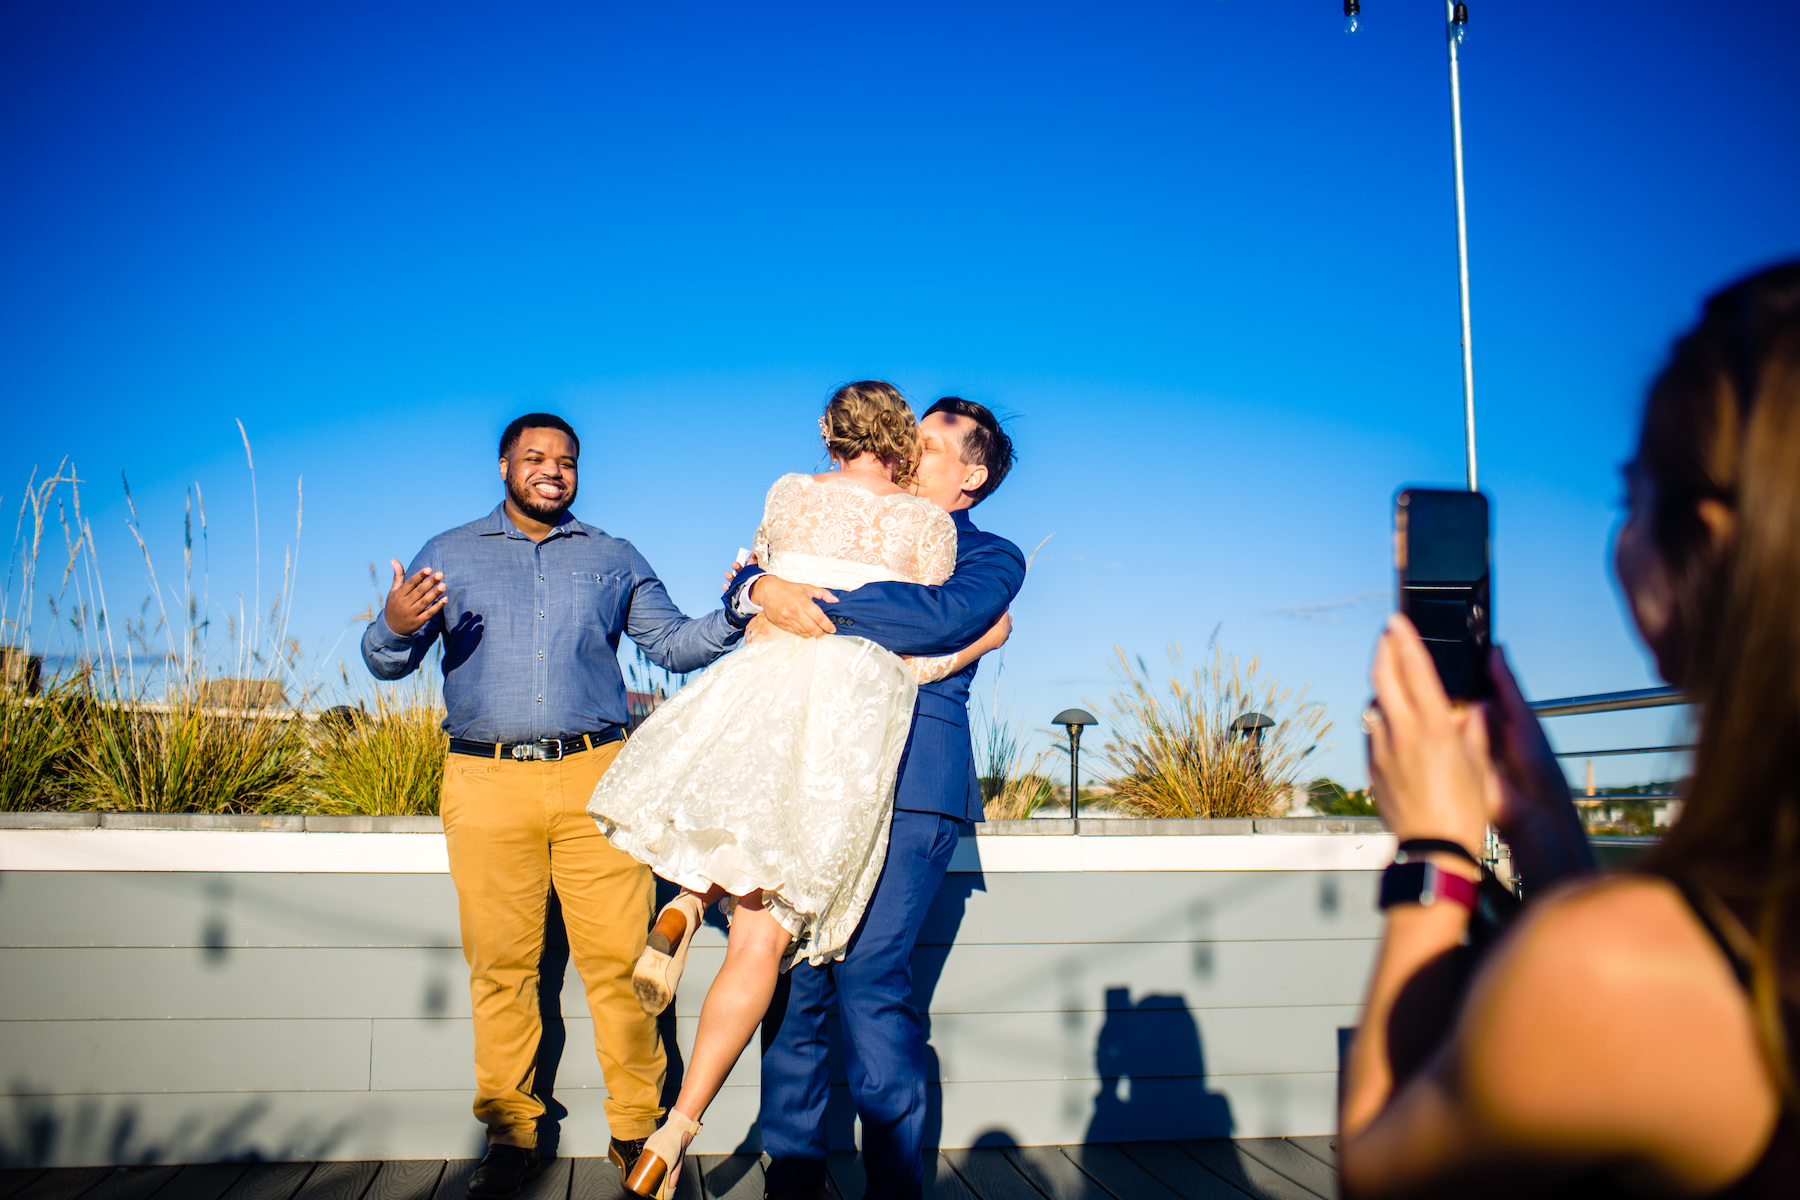 DC Wedding Photography - Washington Elopements | The bride and groom seal their new marriage with a kiss